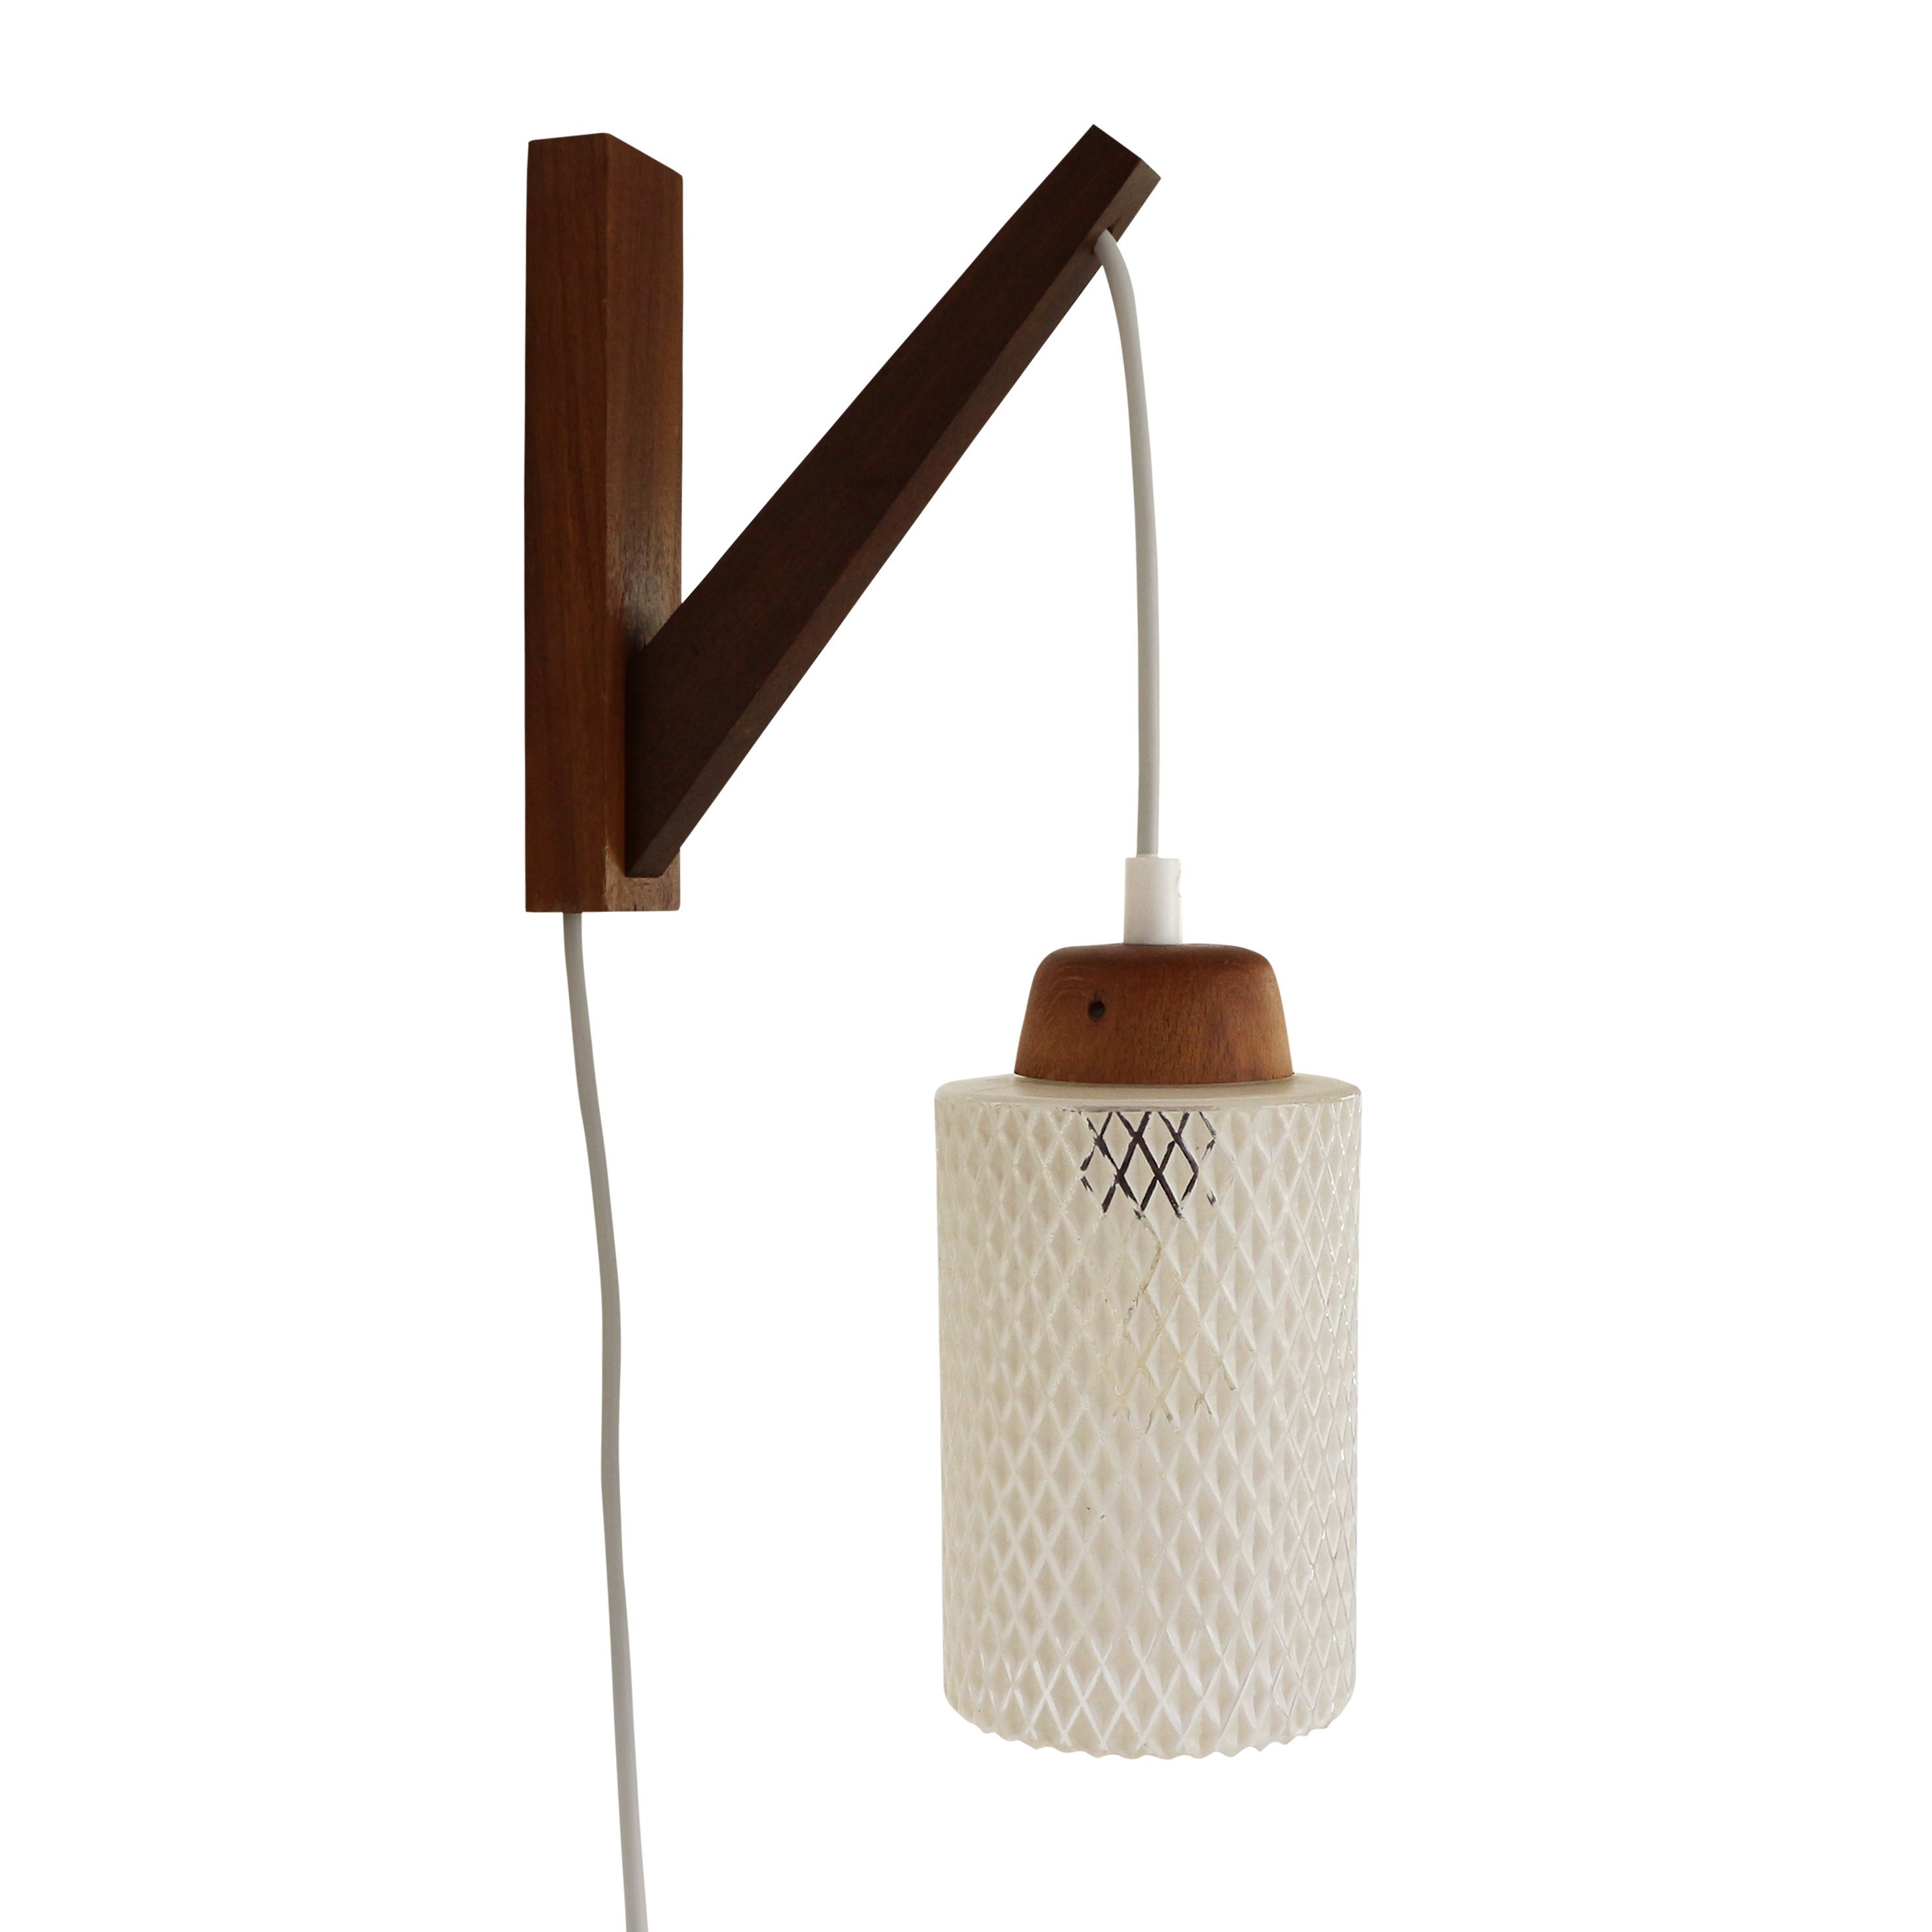 Wall Lights Made From Wood : Hanging wall light made of wood and glass, 1960s #1336